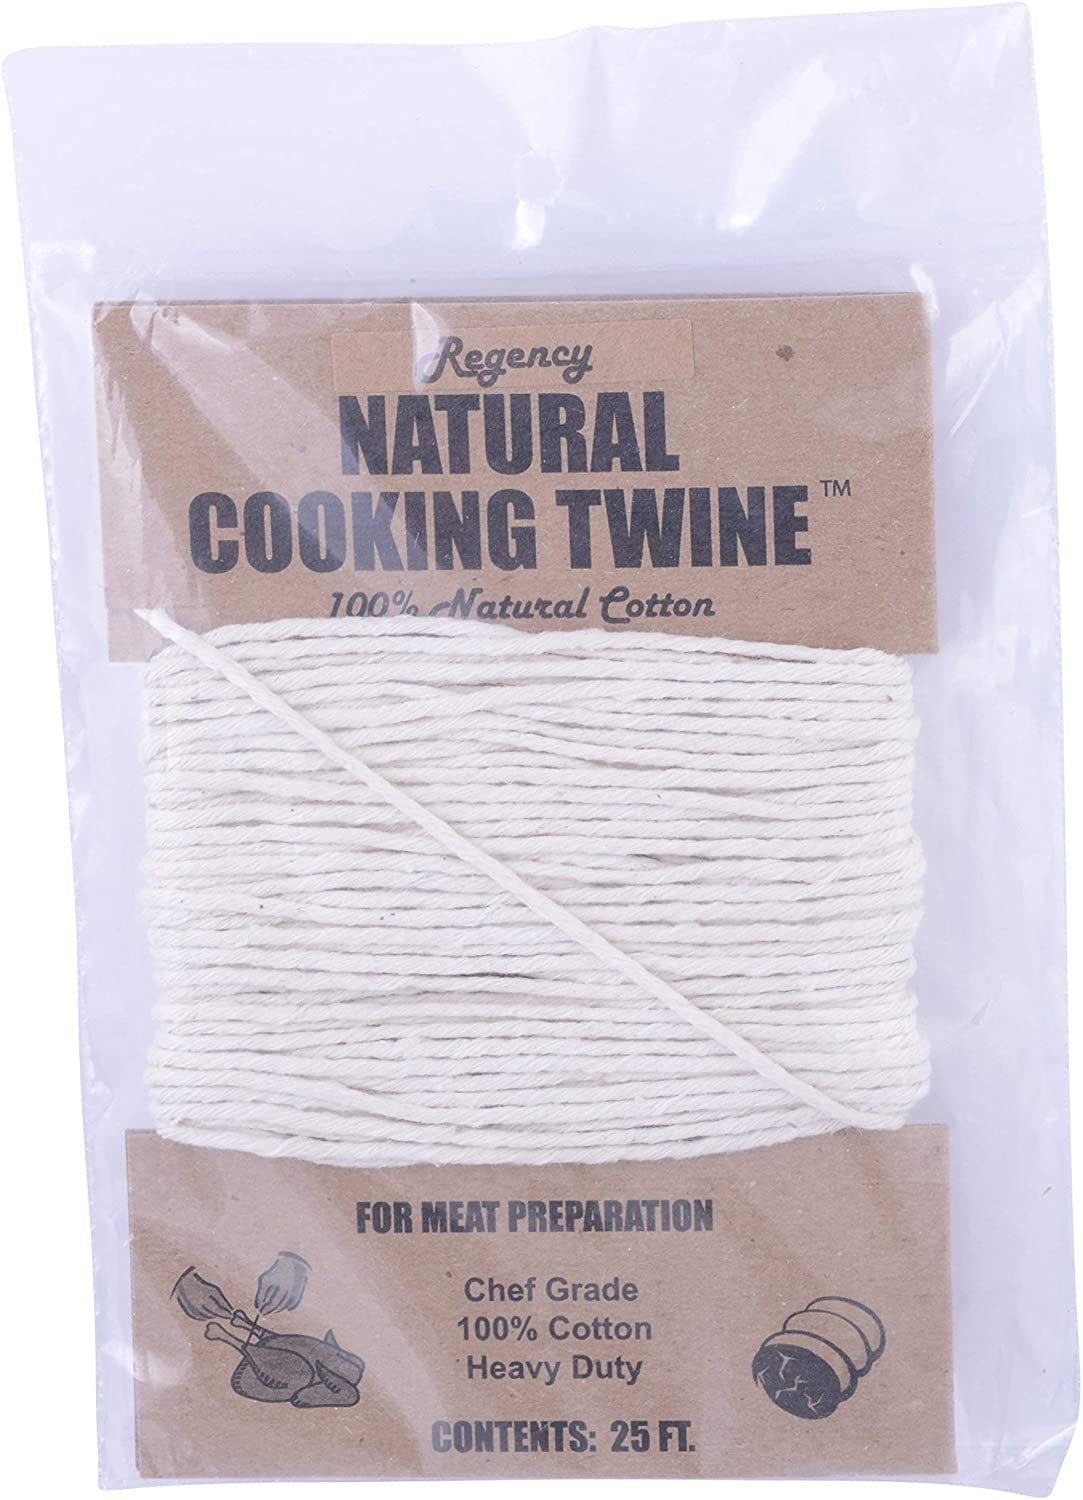 Culinary Accessories Culinary Accessories Meal Preparation Cooking Twine, 100% Natural Cotton 25 feet, FT